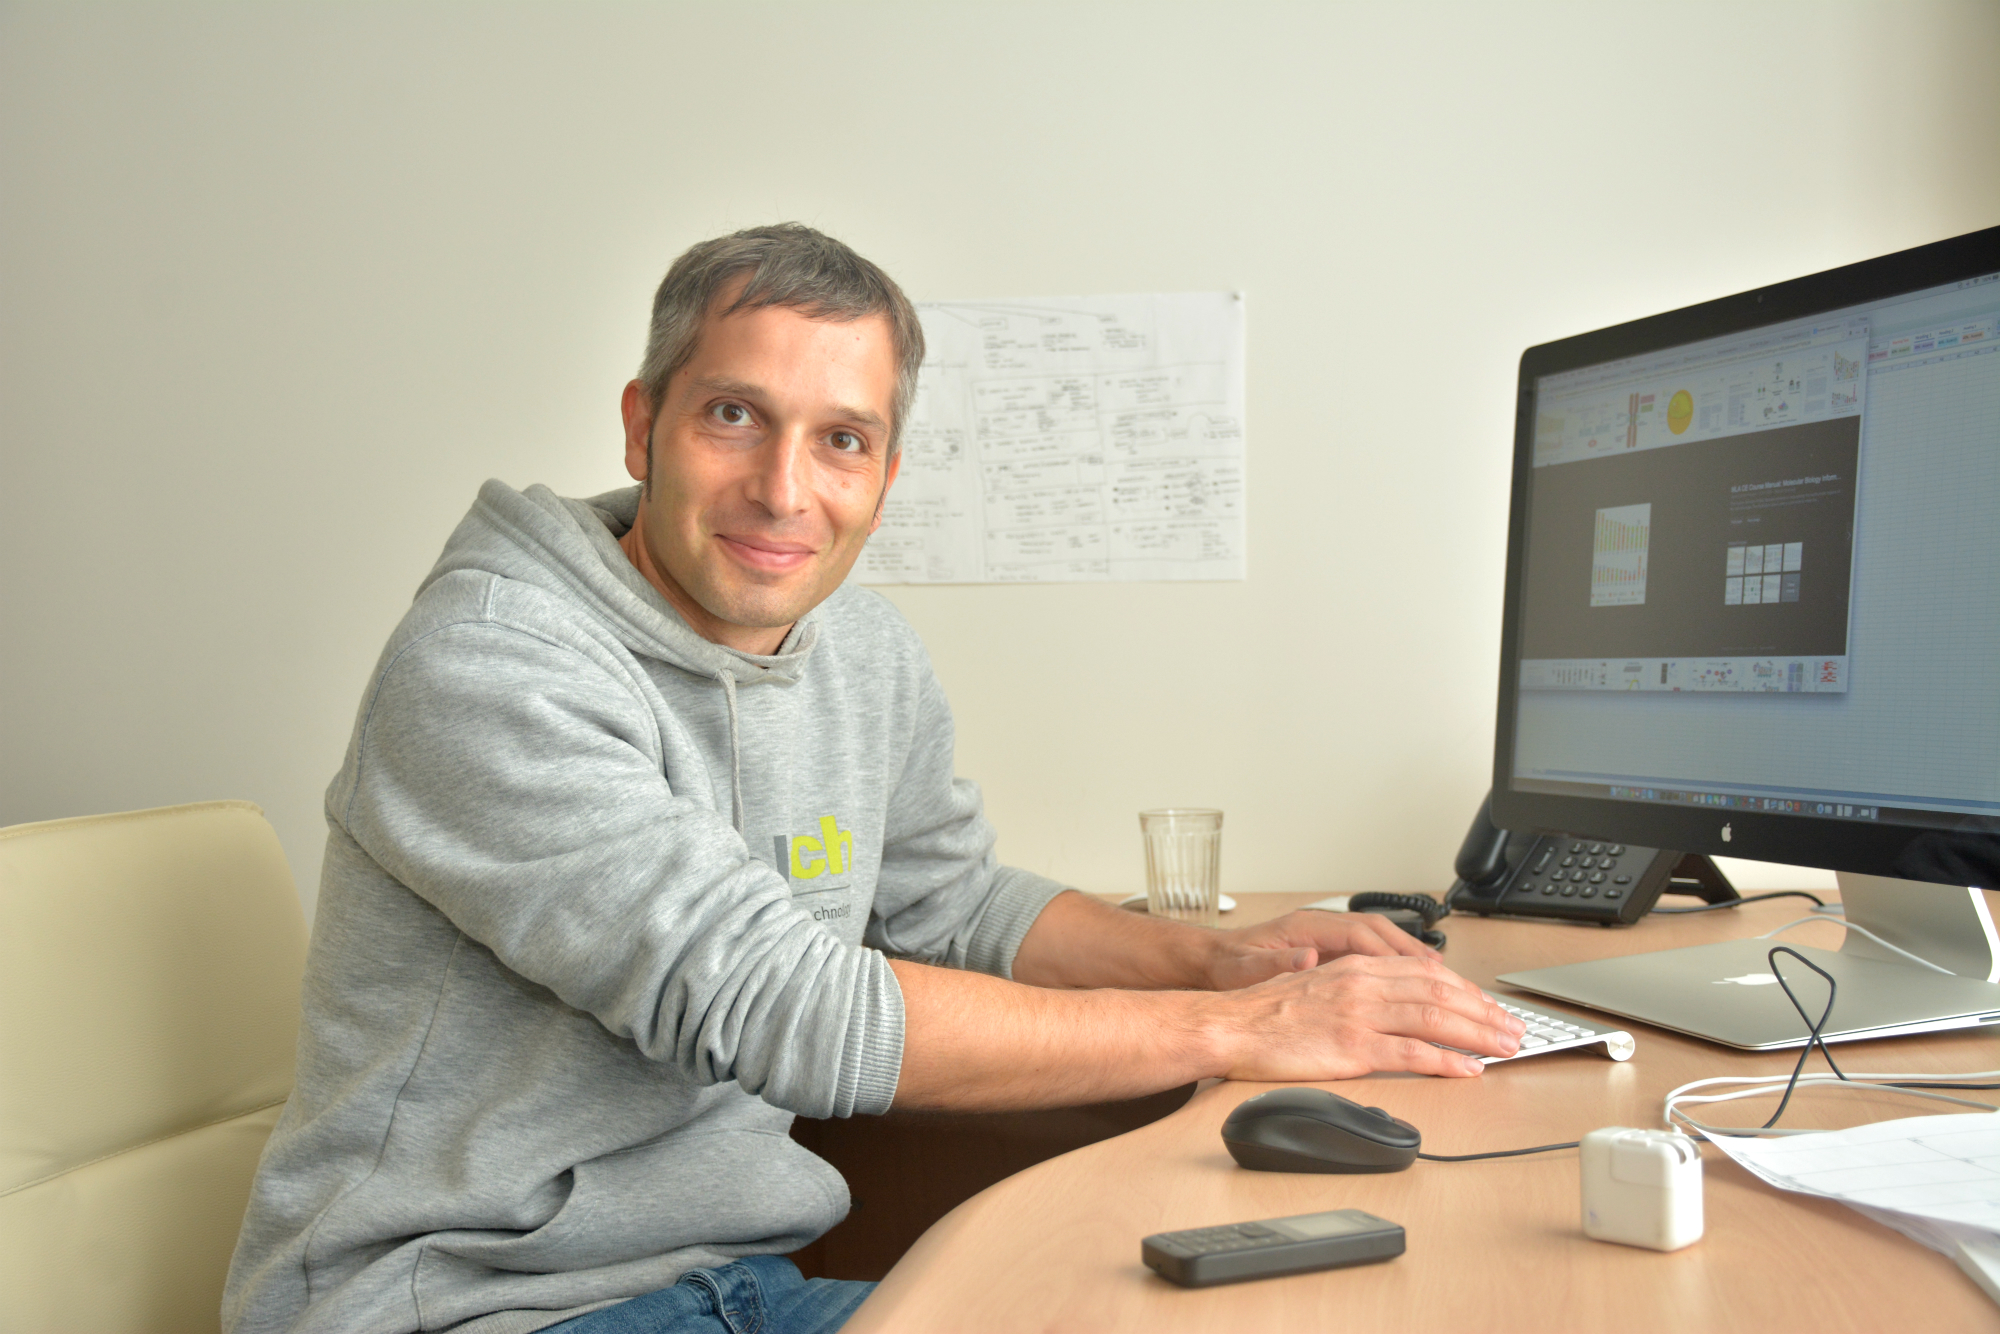 Skoltech Professor Philipp Khaitovich. Photo: Skoltech.